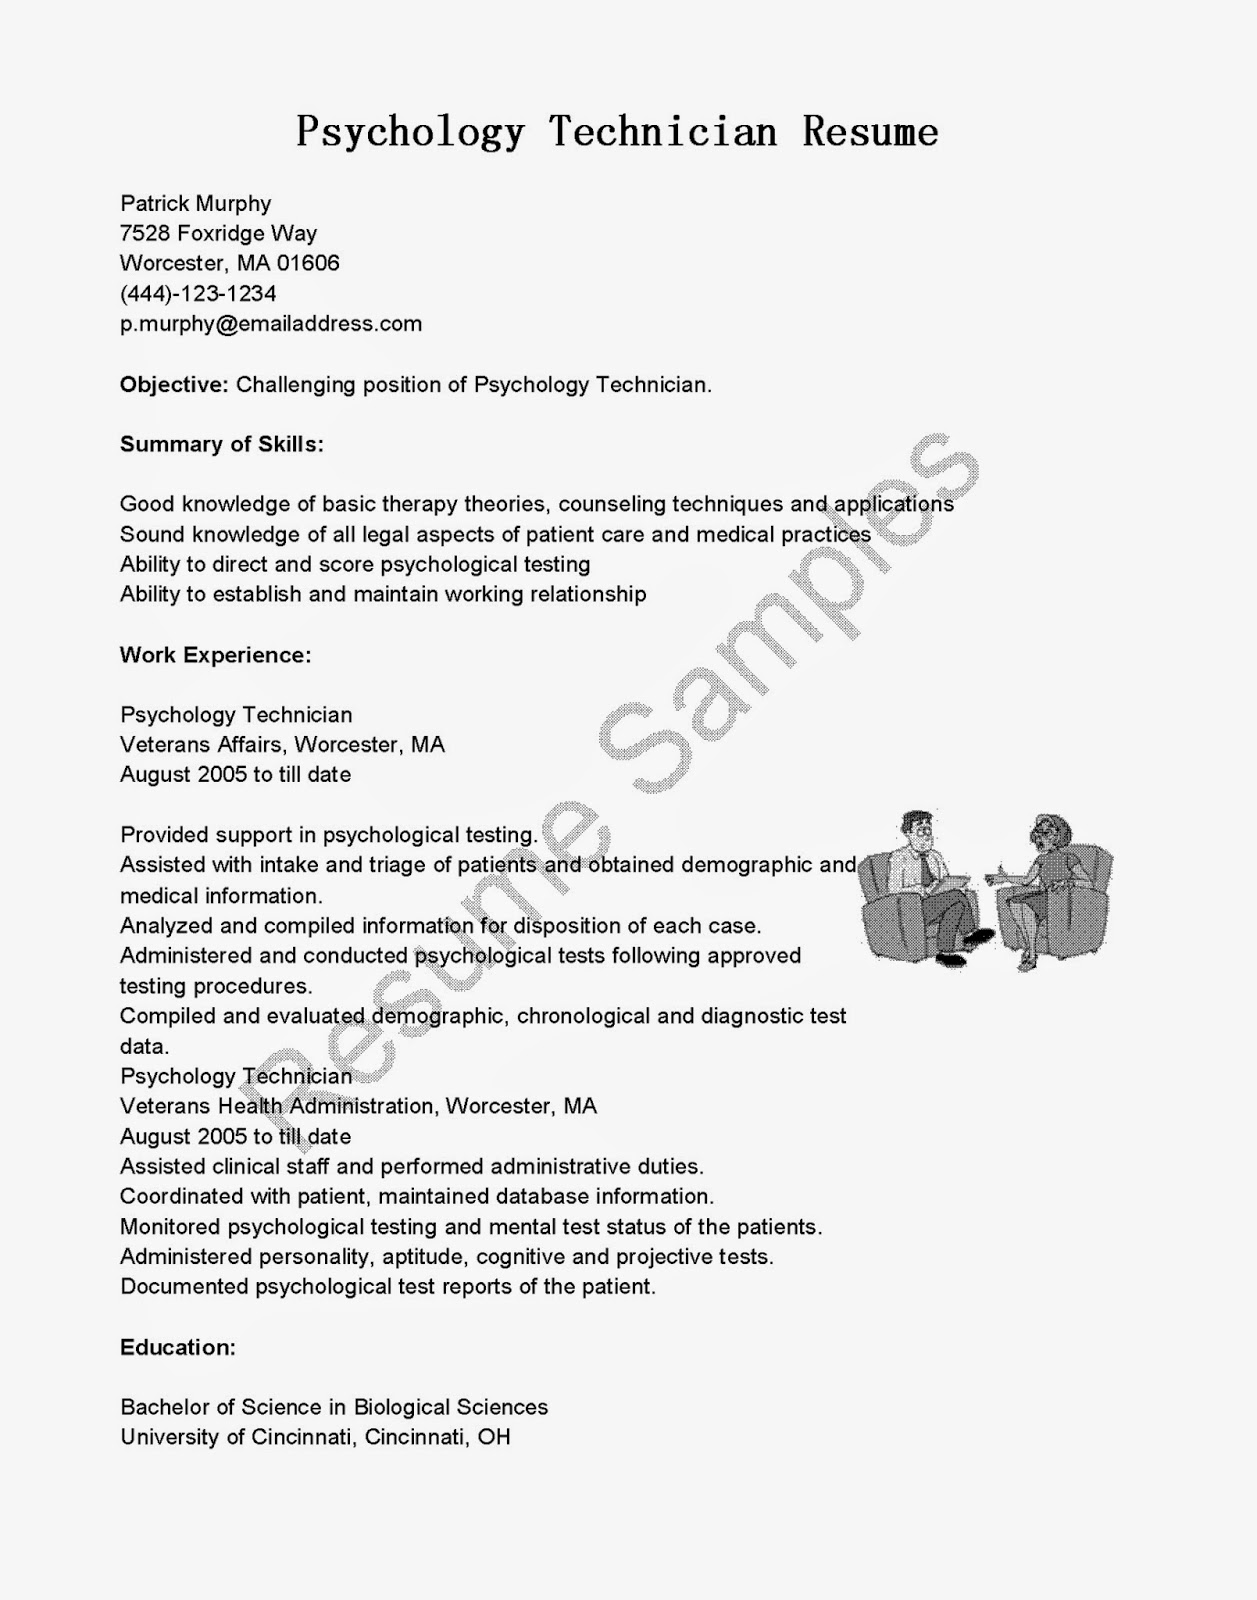 Psychology Resume Template 22.06.2017